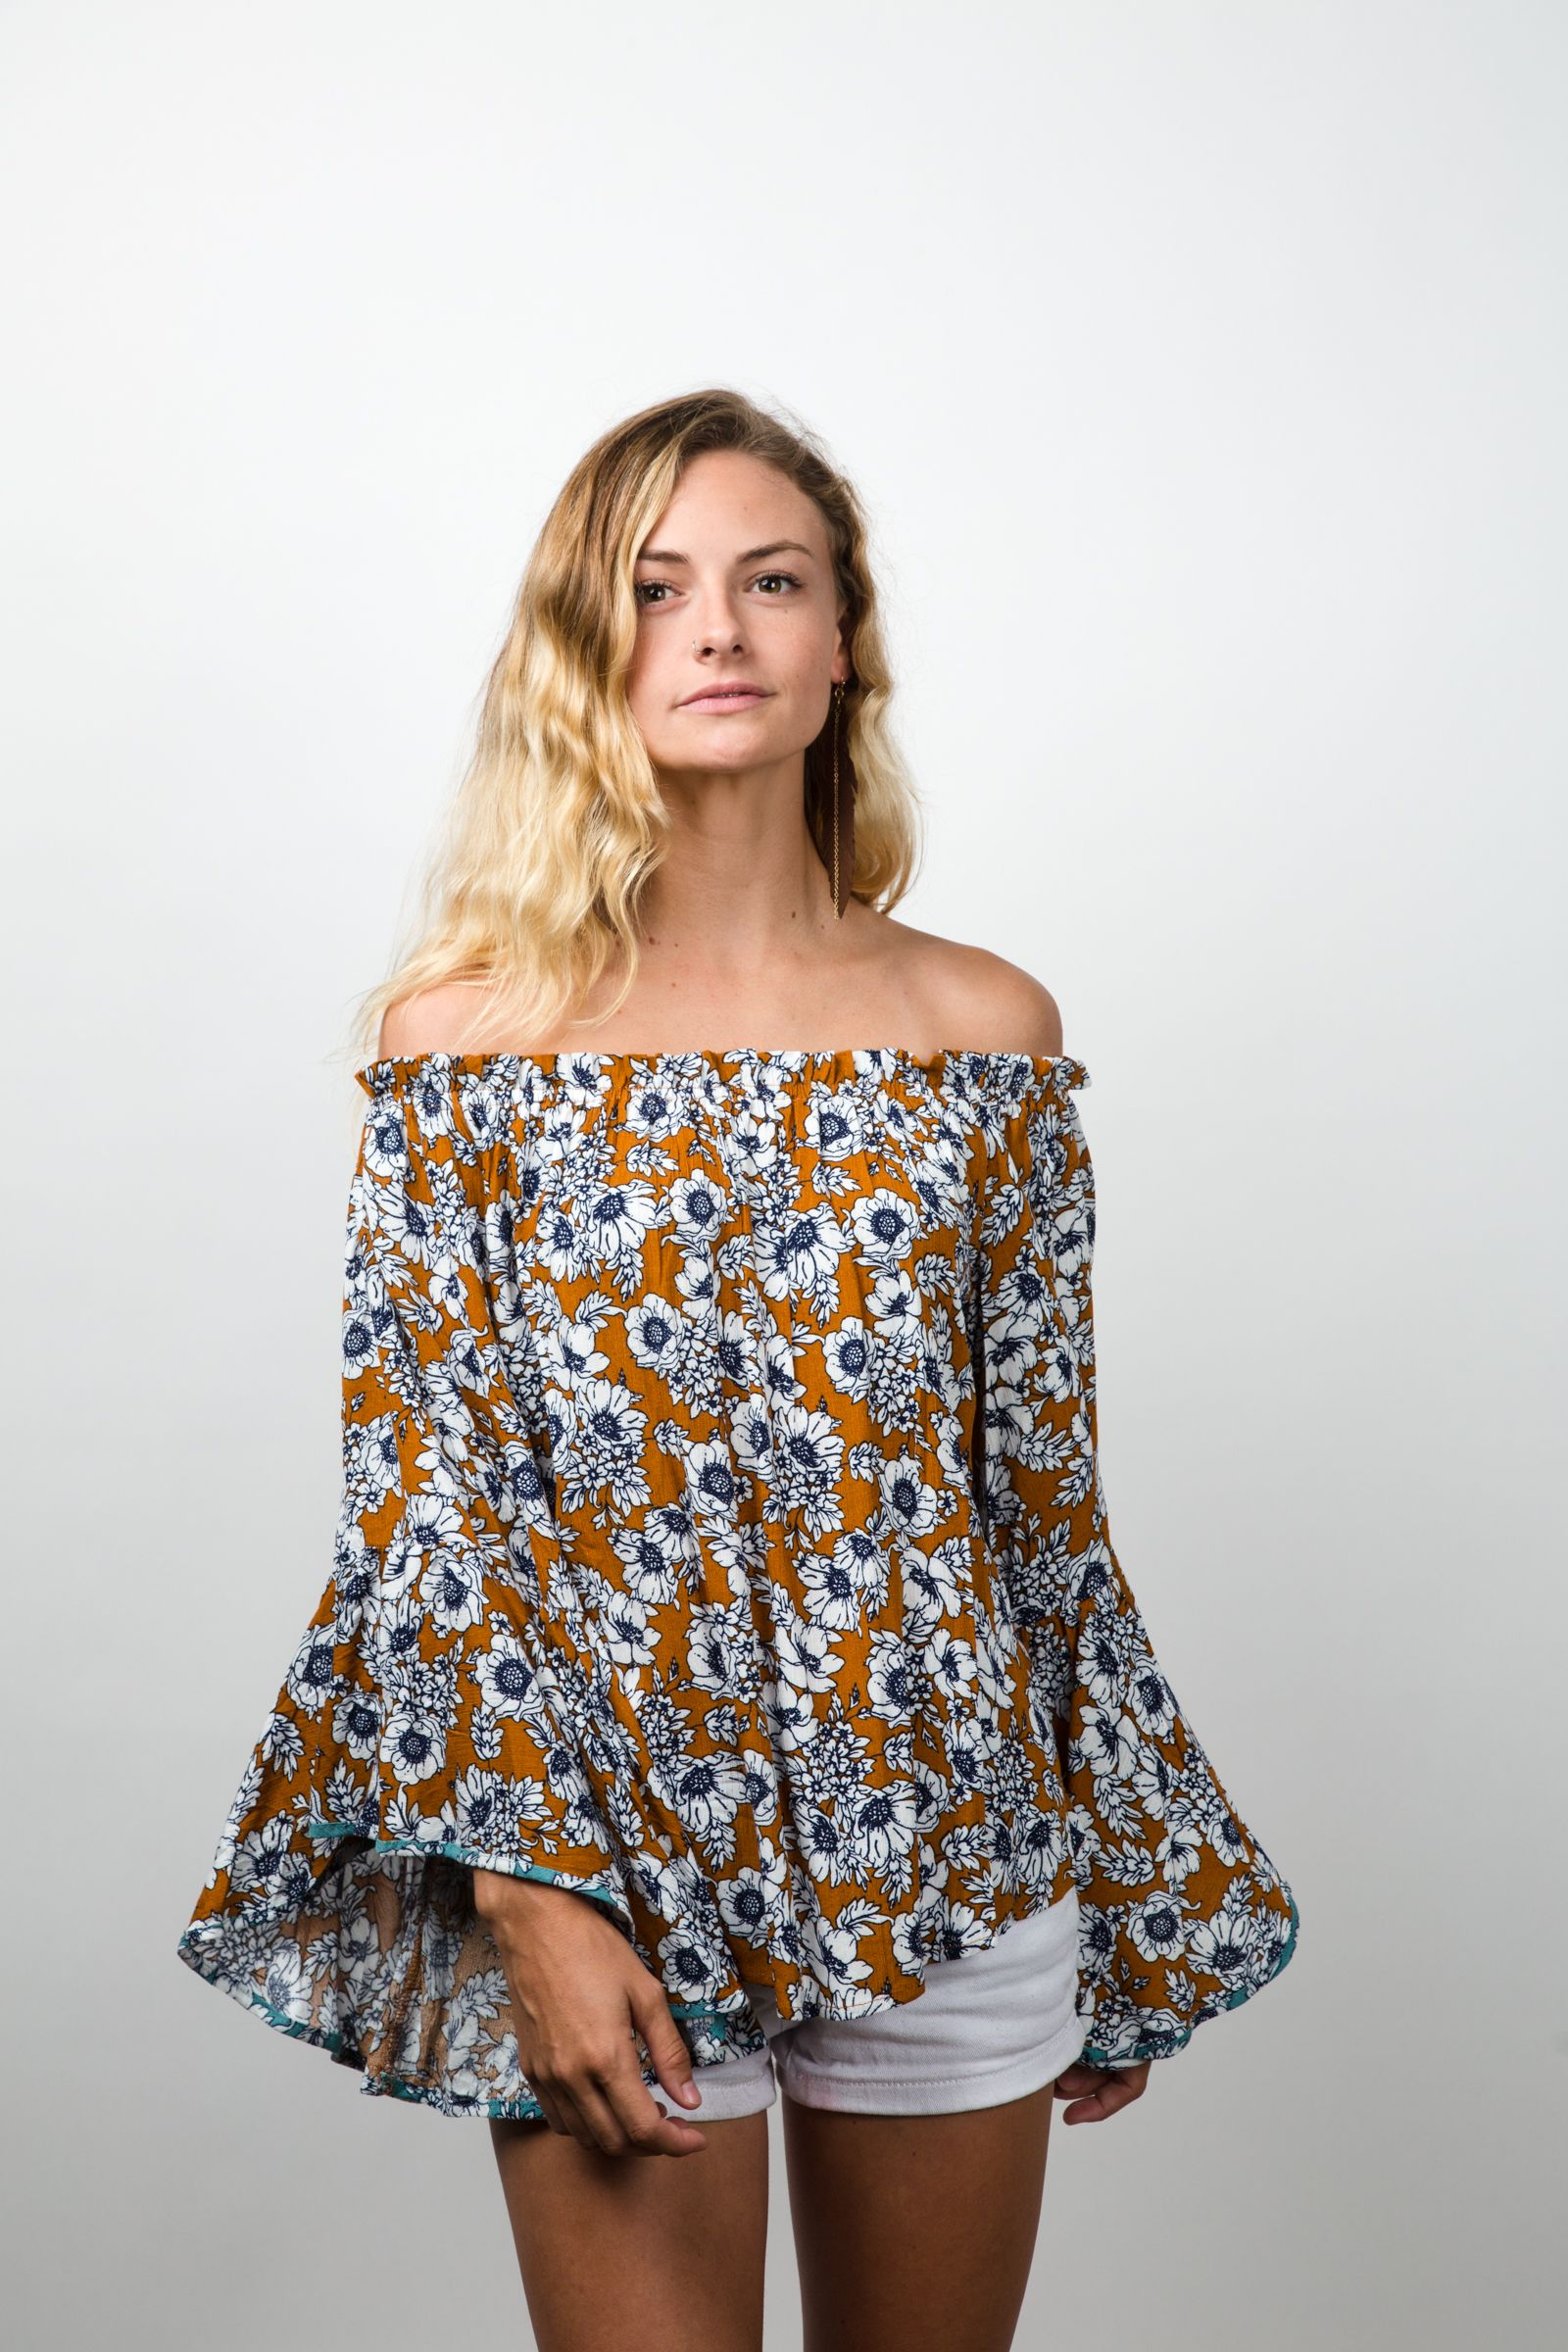 Stay fashionable and cool in this off the shoulder breezy top! This floral  blouse features on-trend bell sleeves with gathered elastic off the  shoulder neck ... 637ca36d5